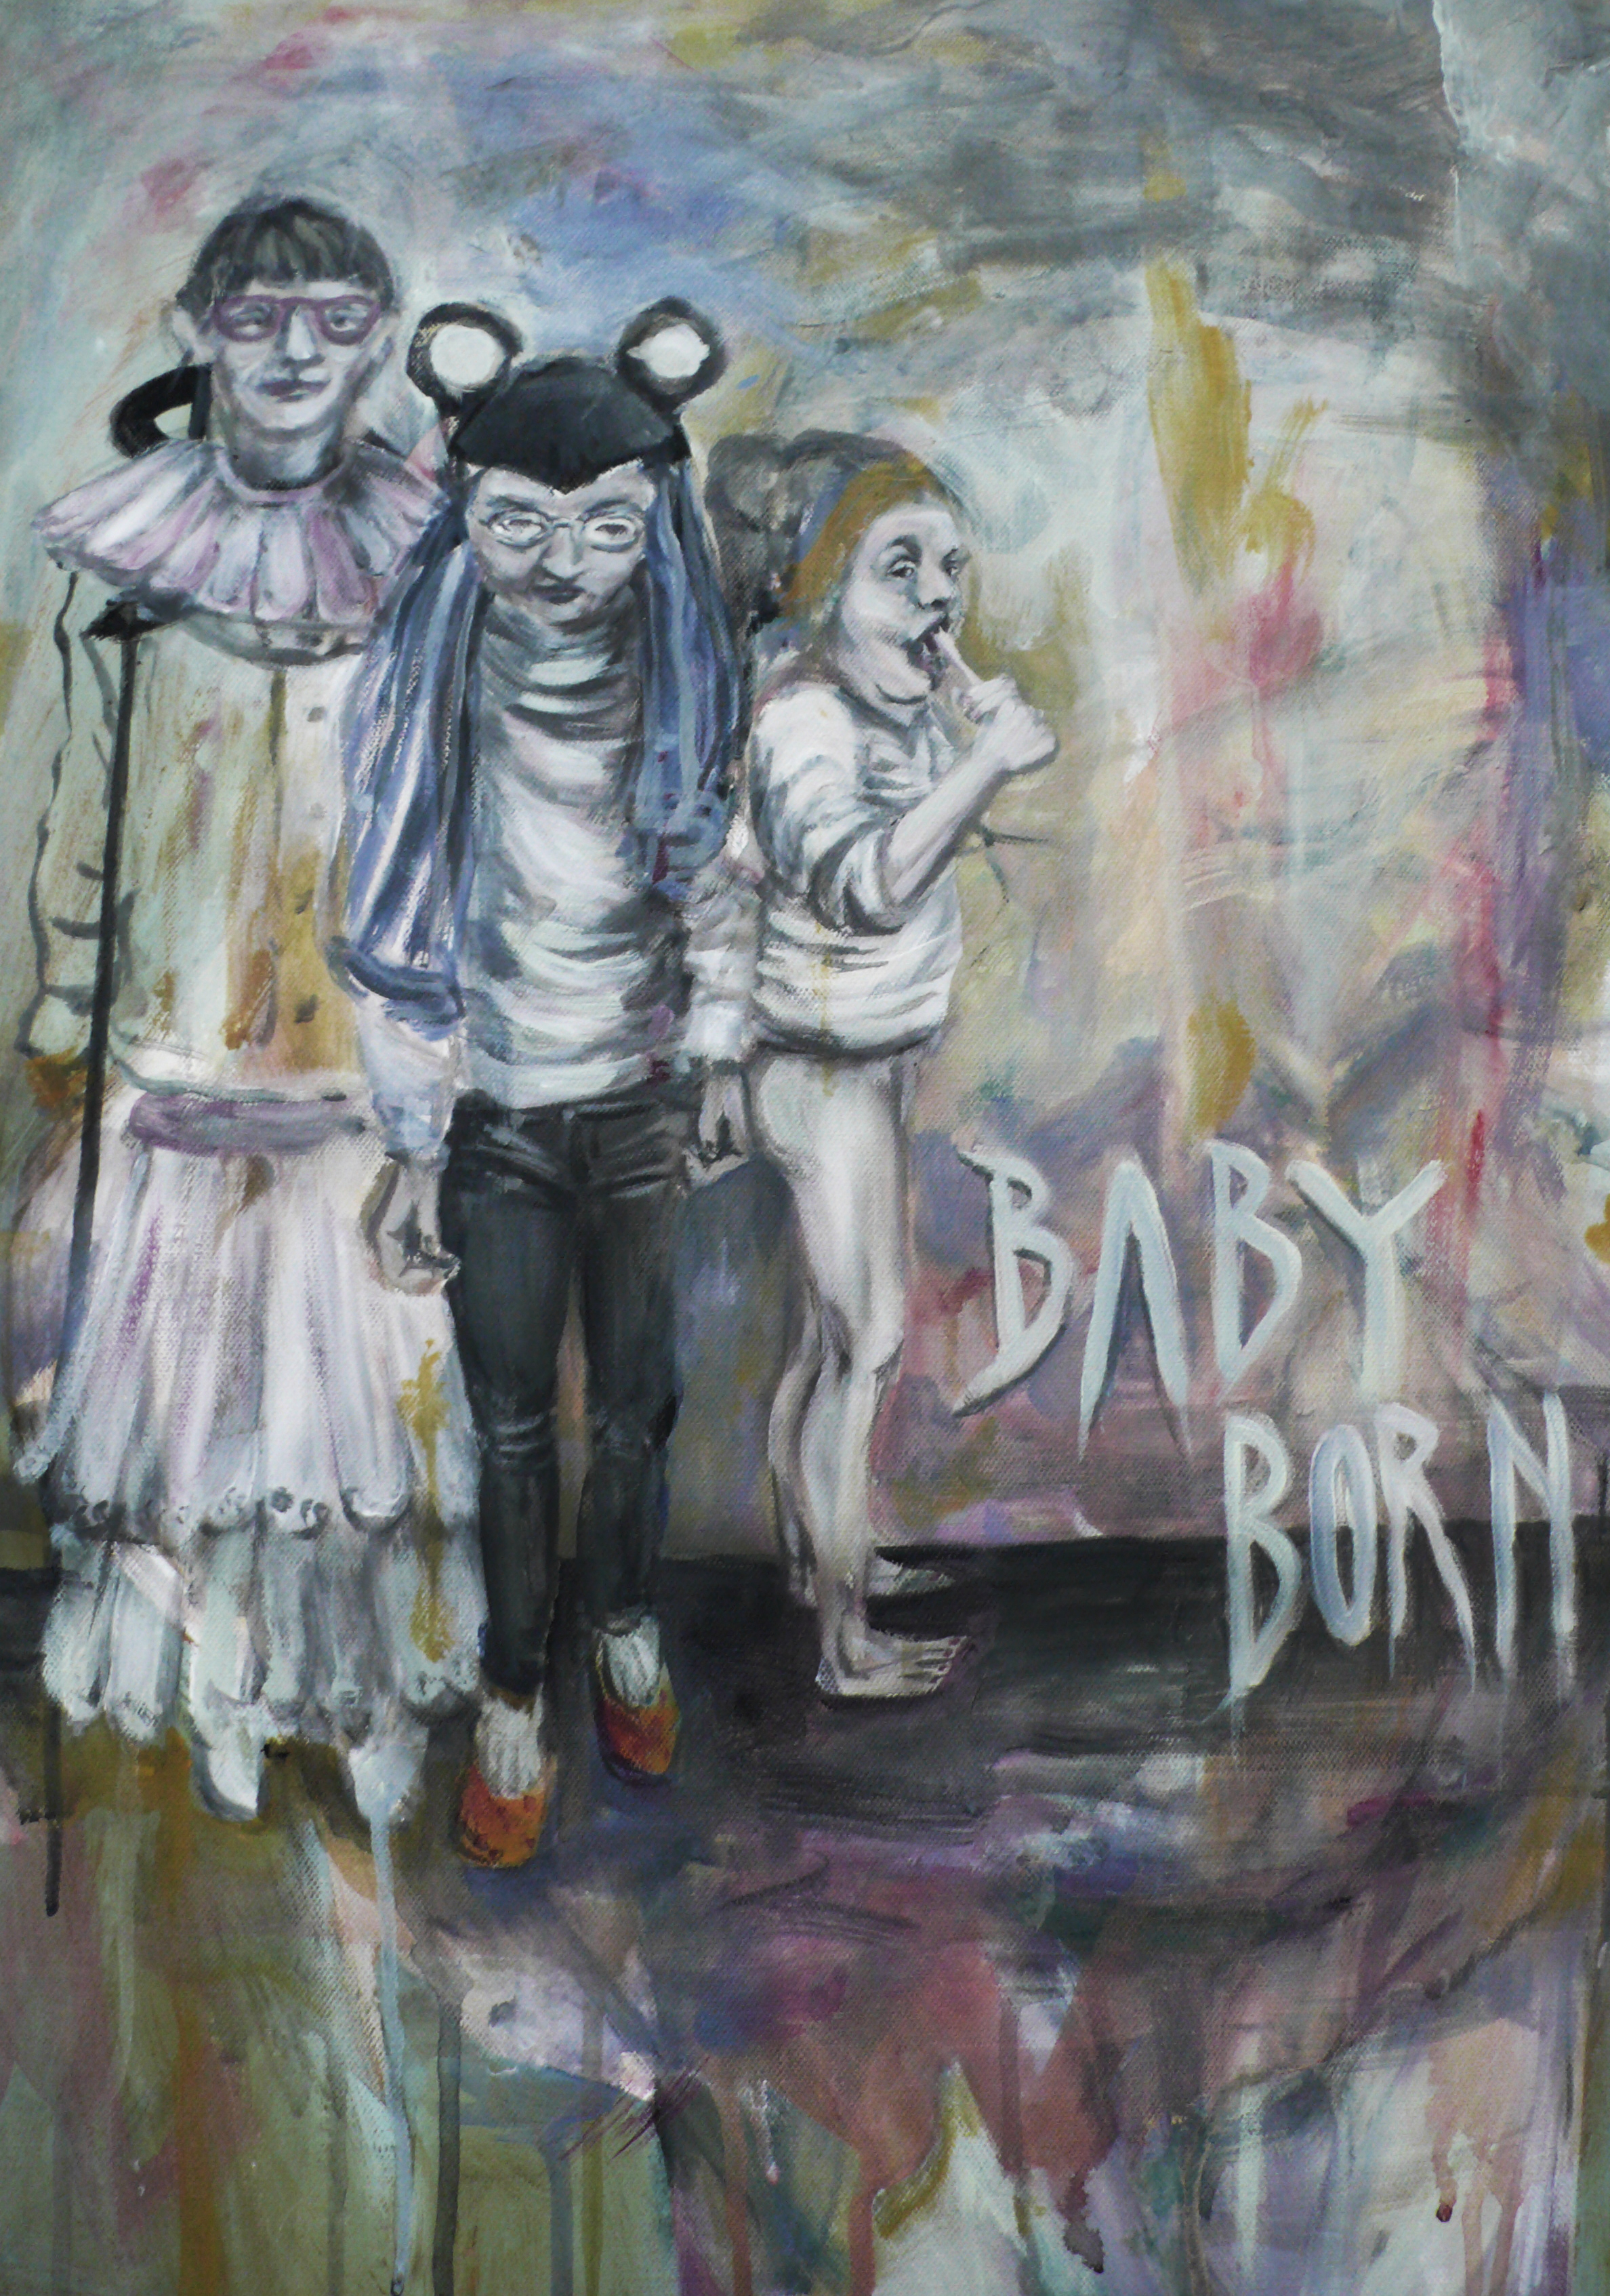 Baby Born, Acrylic on Canvas, 70x50cm, 2015